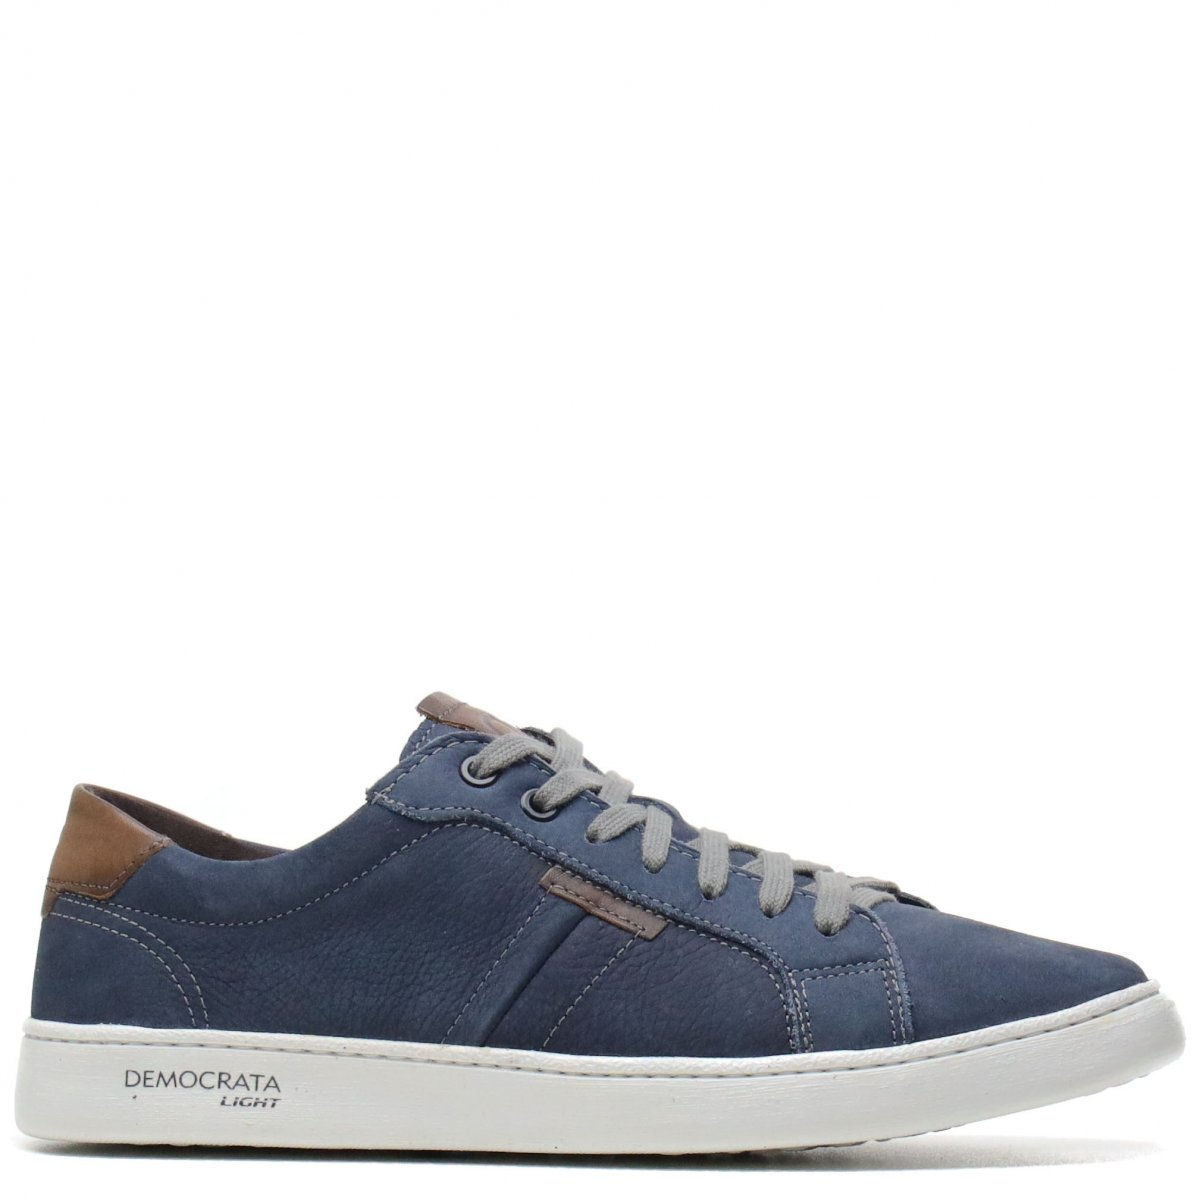 Sapatênis Democrata Denim Hover Light Azul